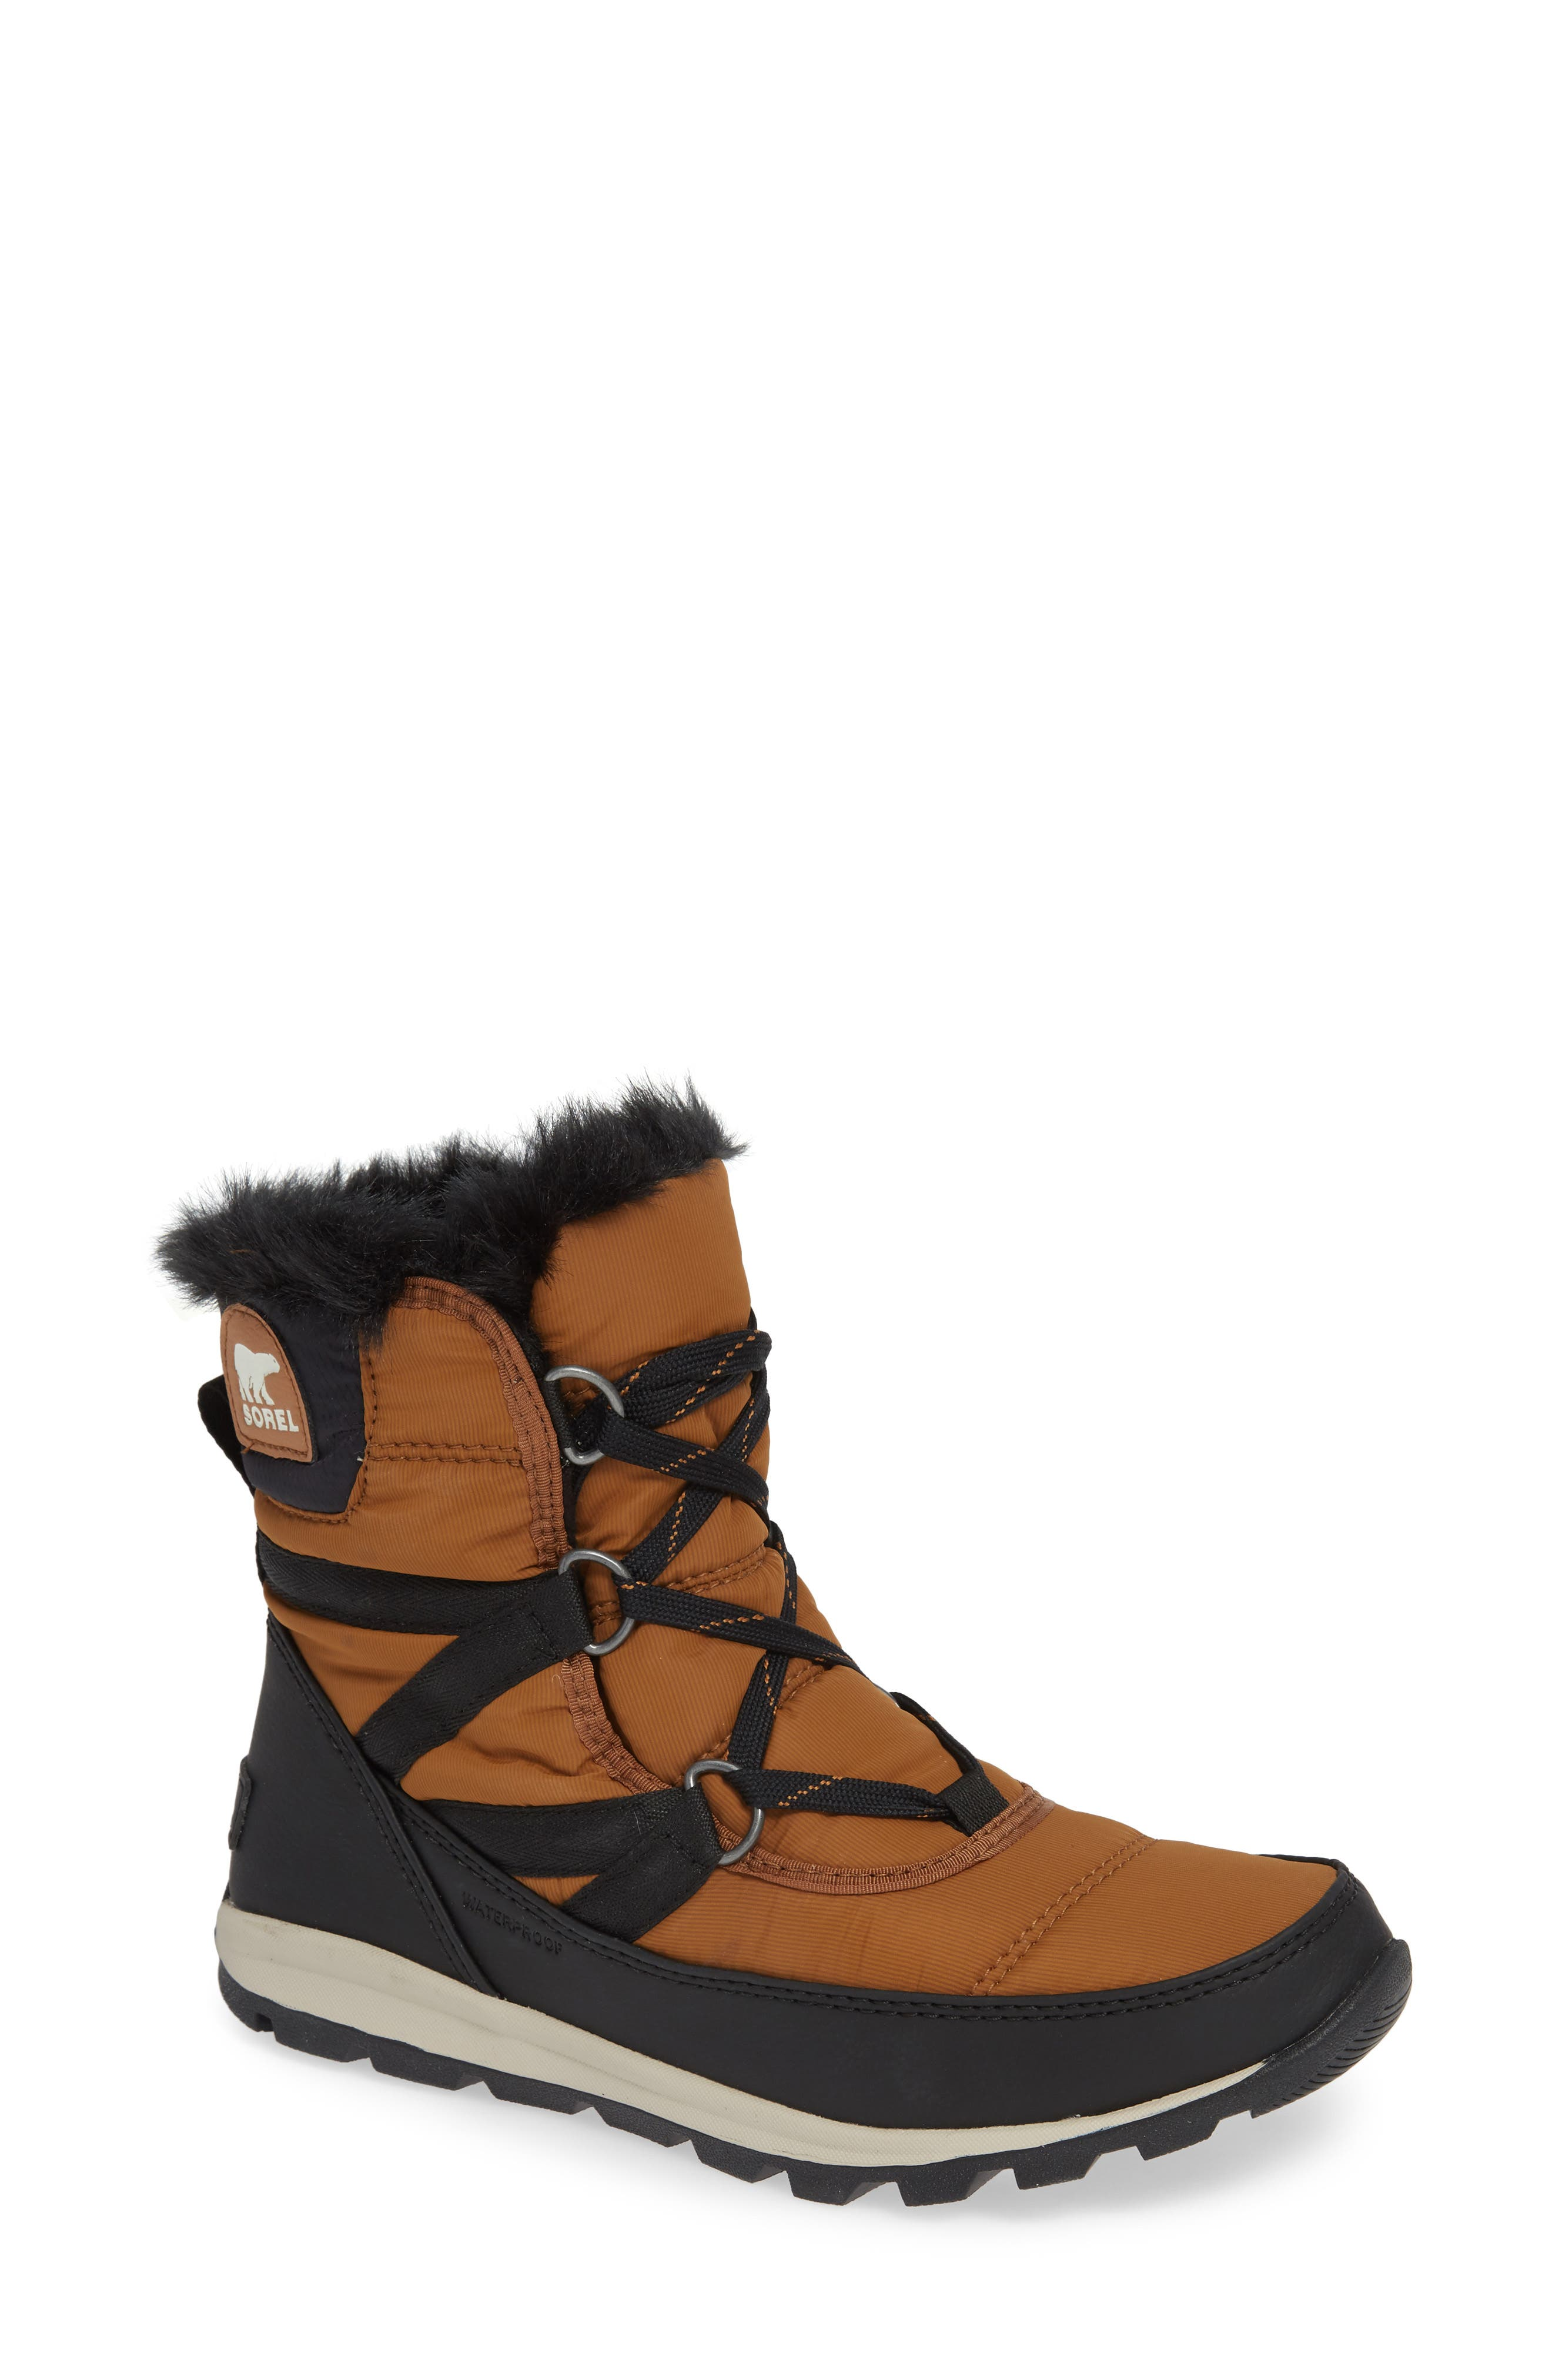 Whitney Snow Bootie,                             Main thumbnail 1, color,                             CAMEL BROWN